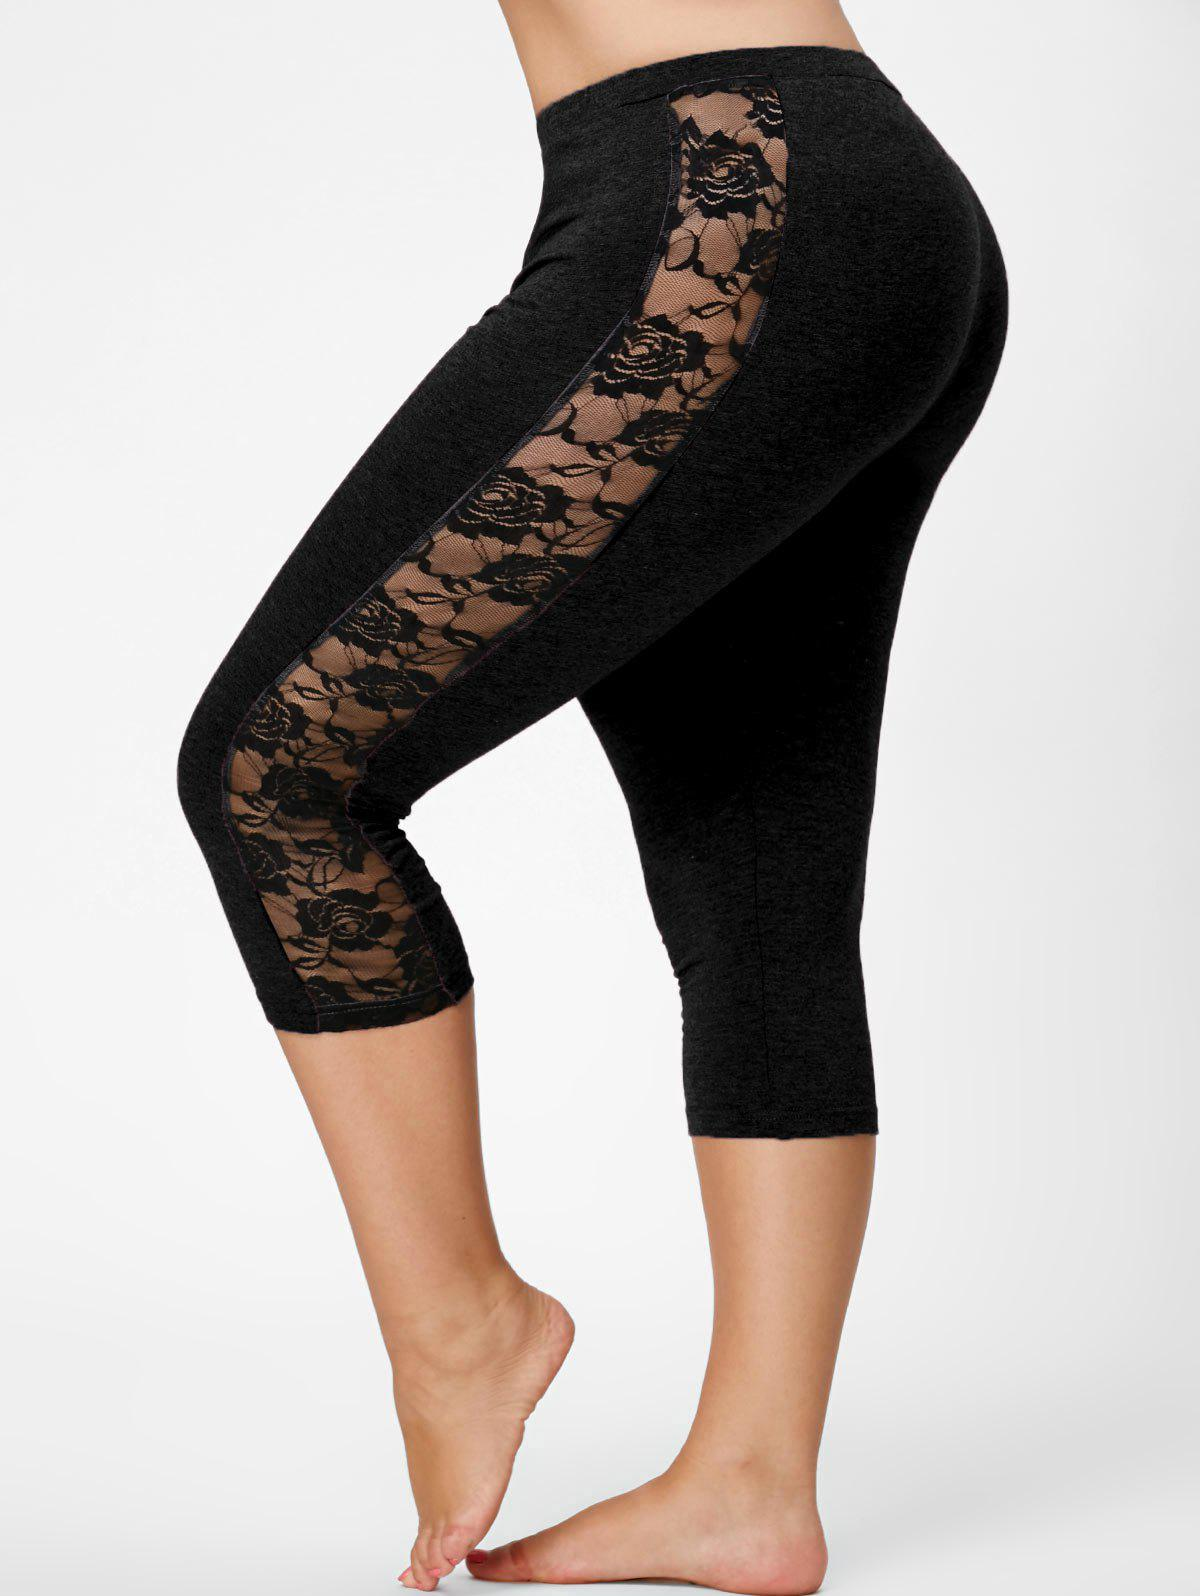 Lace Mesh Panel Plus Size Capri Leggings sheer plus size mesh panel workout leggings